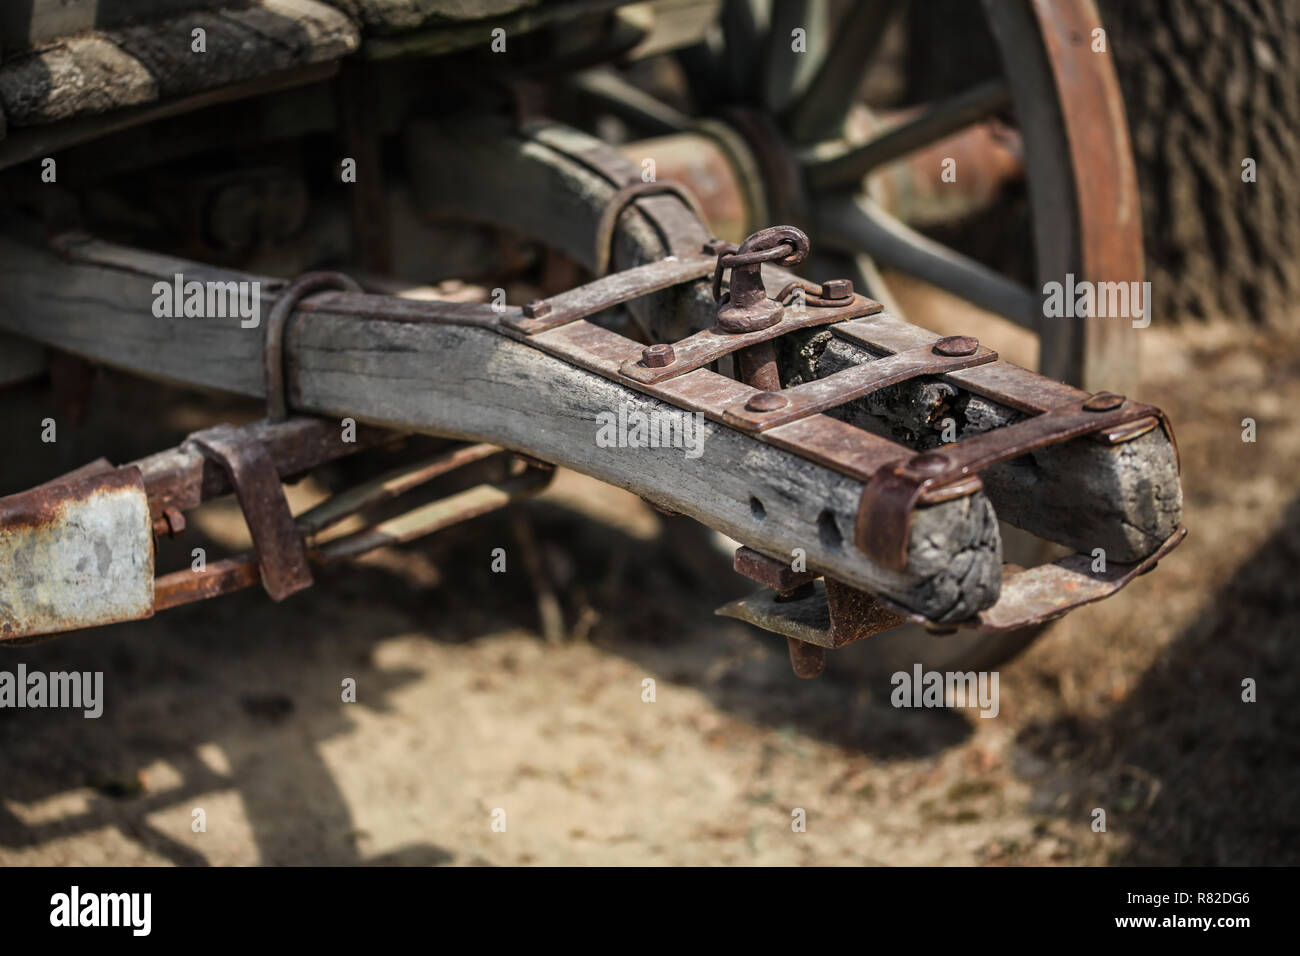 Detail on old rusty wooden wagon connecting mechanism. Stock Photo